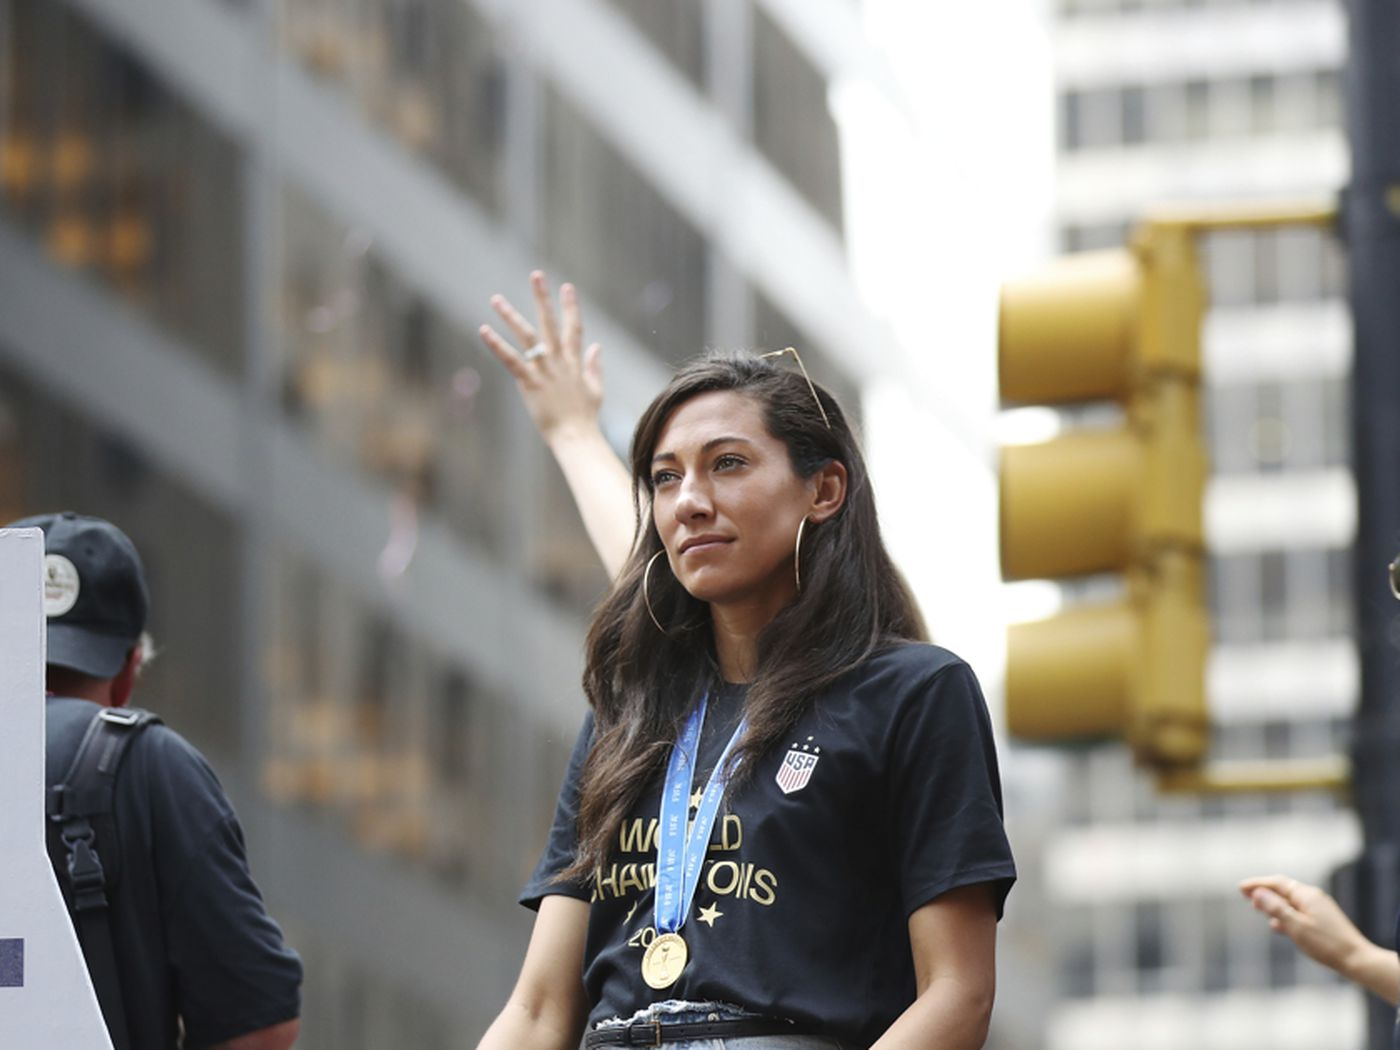 Brad Rock: Christen Press' misstep was rooted in a desire to